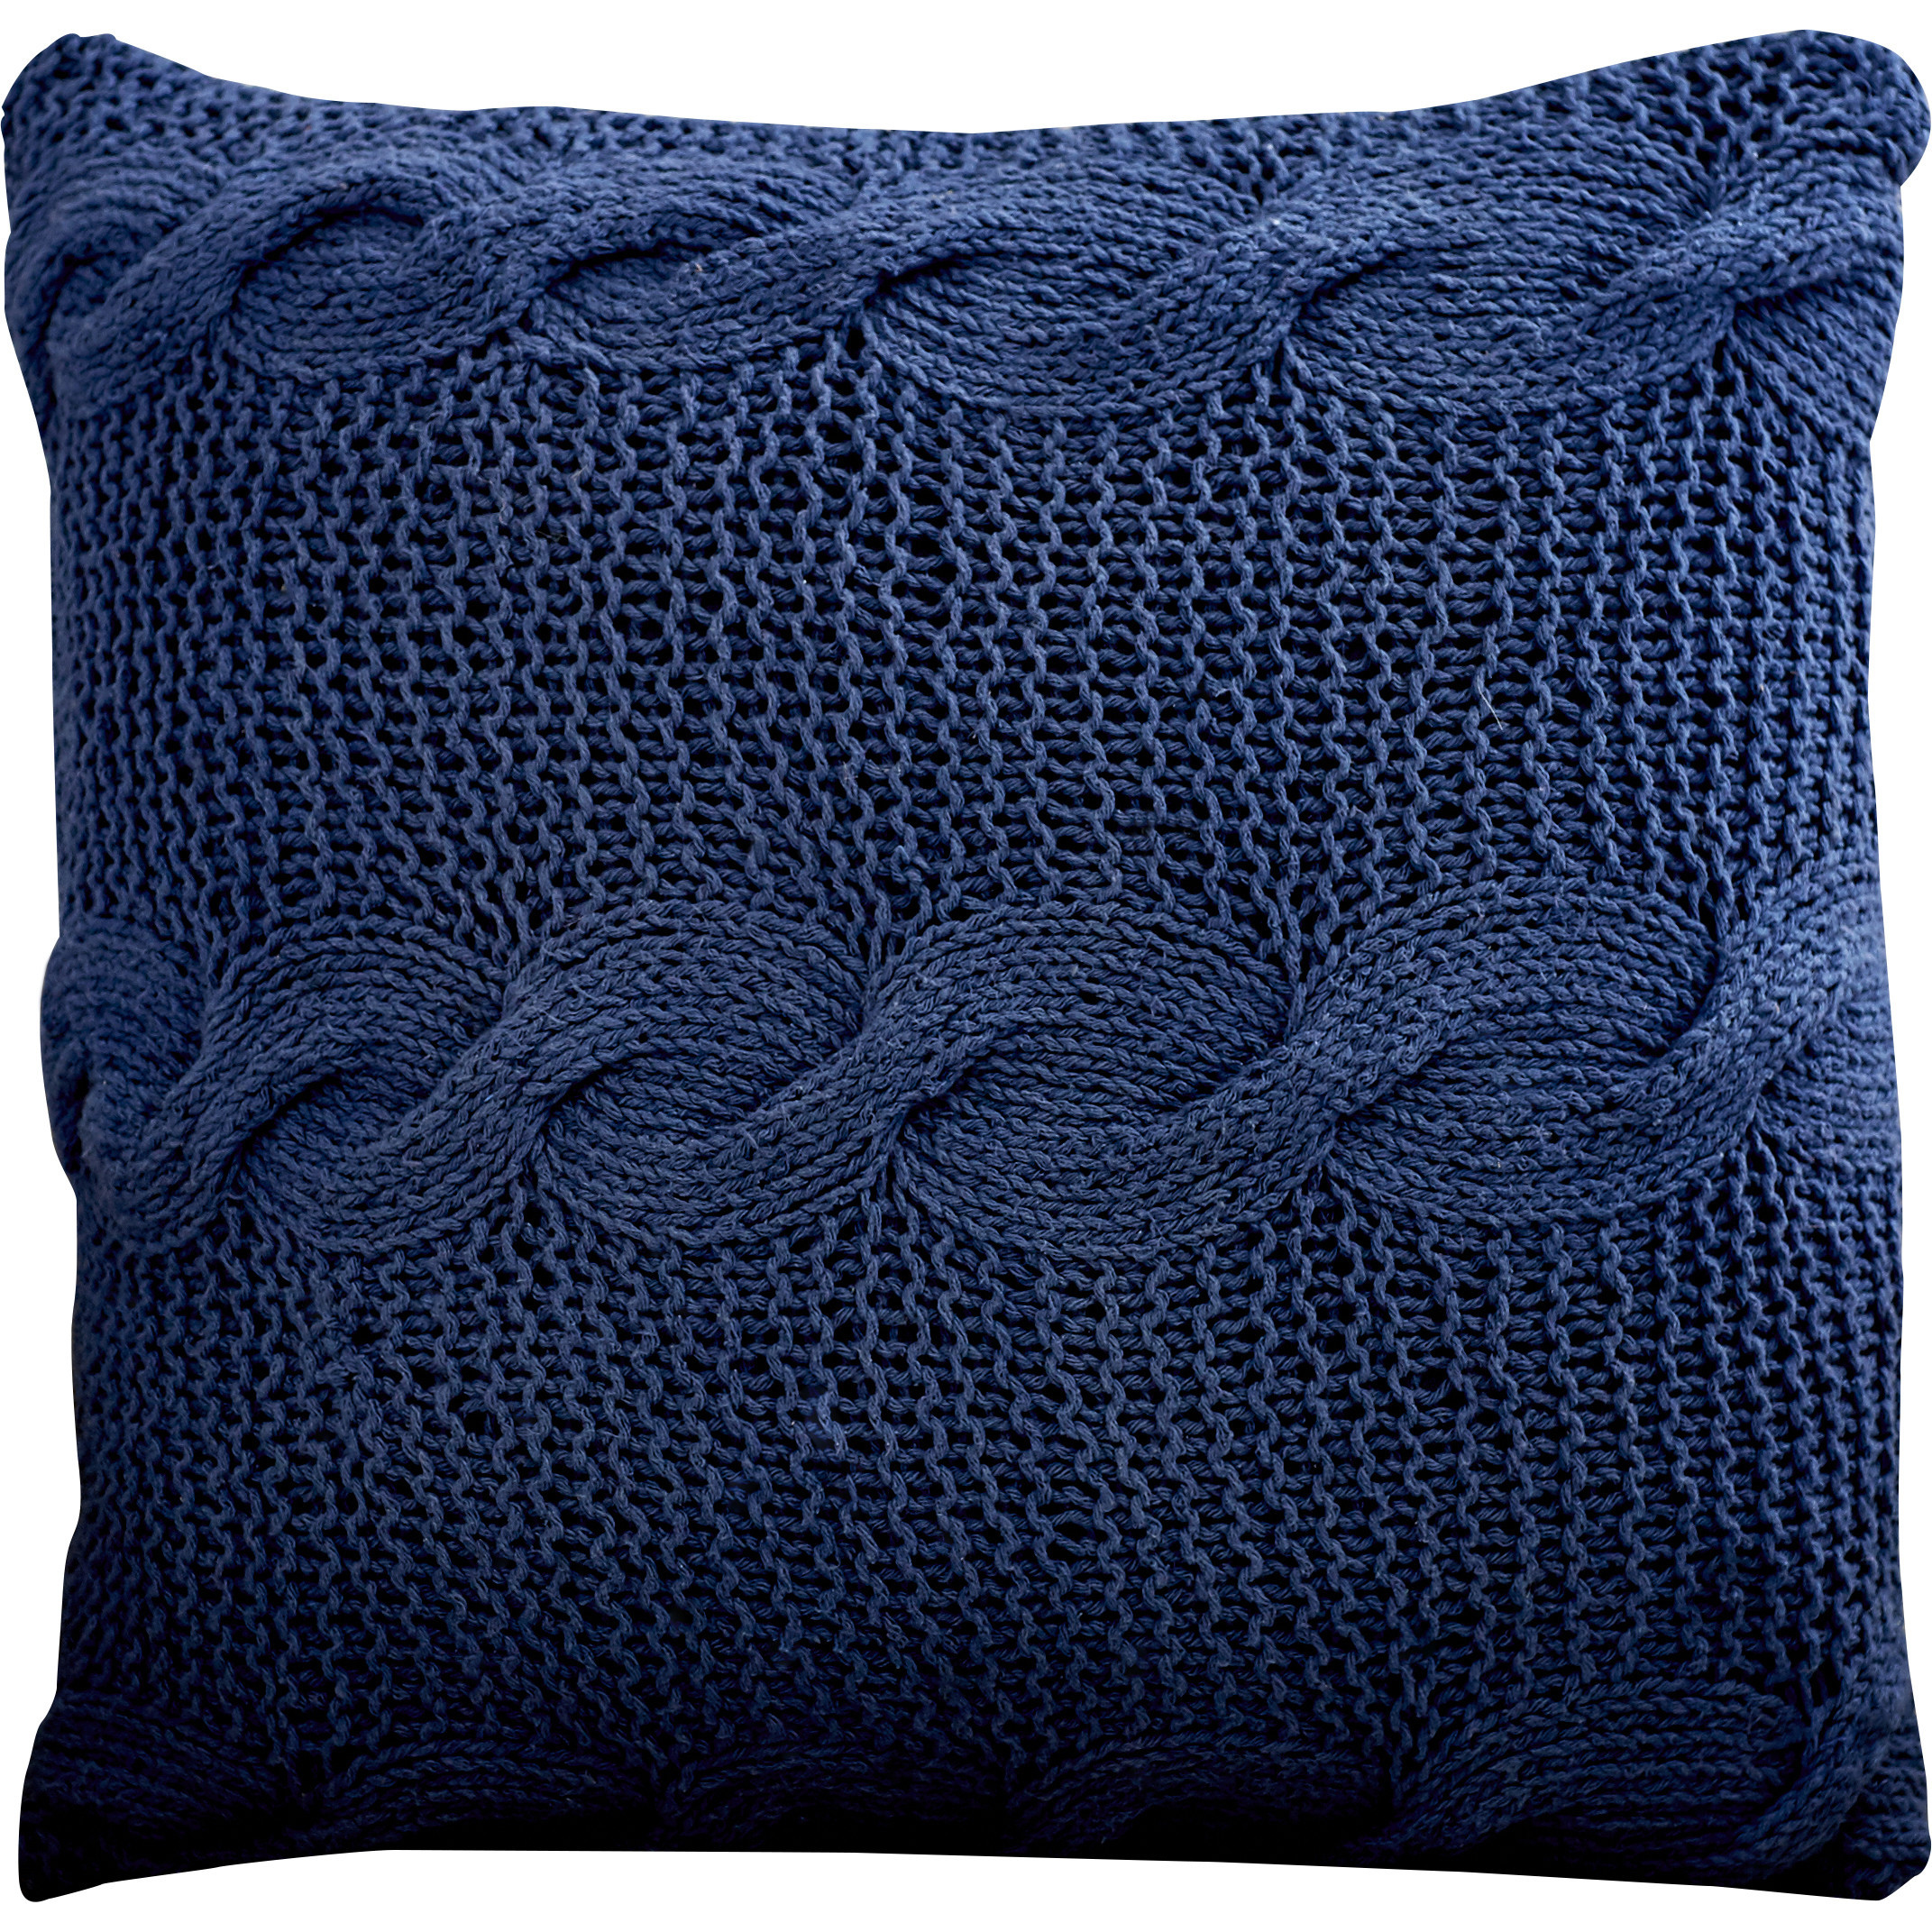 Best Of Beachcrest Home Loganville Cable Knit Throw Pillow Cable Knit Throw Pillow Of Great 48 Ideas Cable Knit Throw Pillow